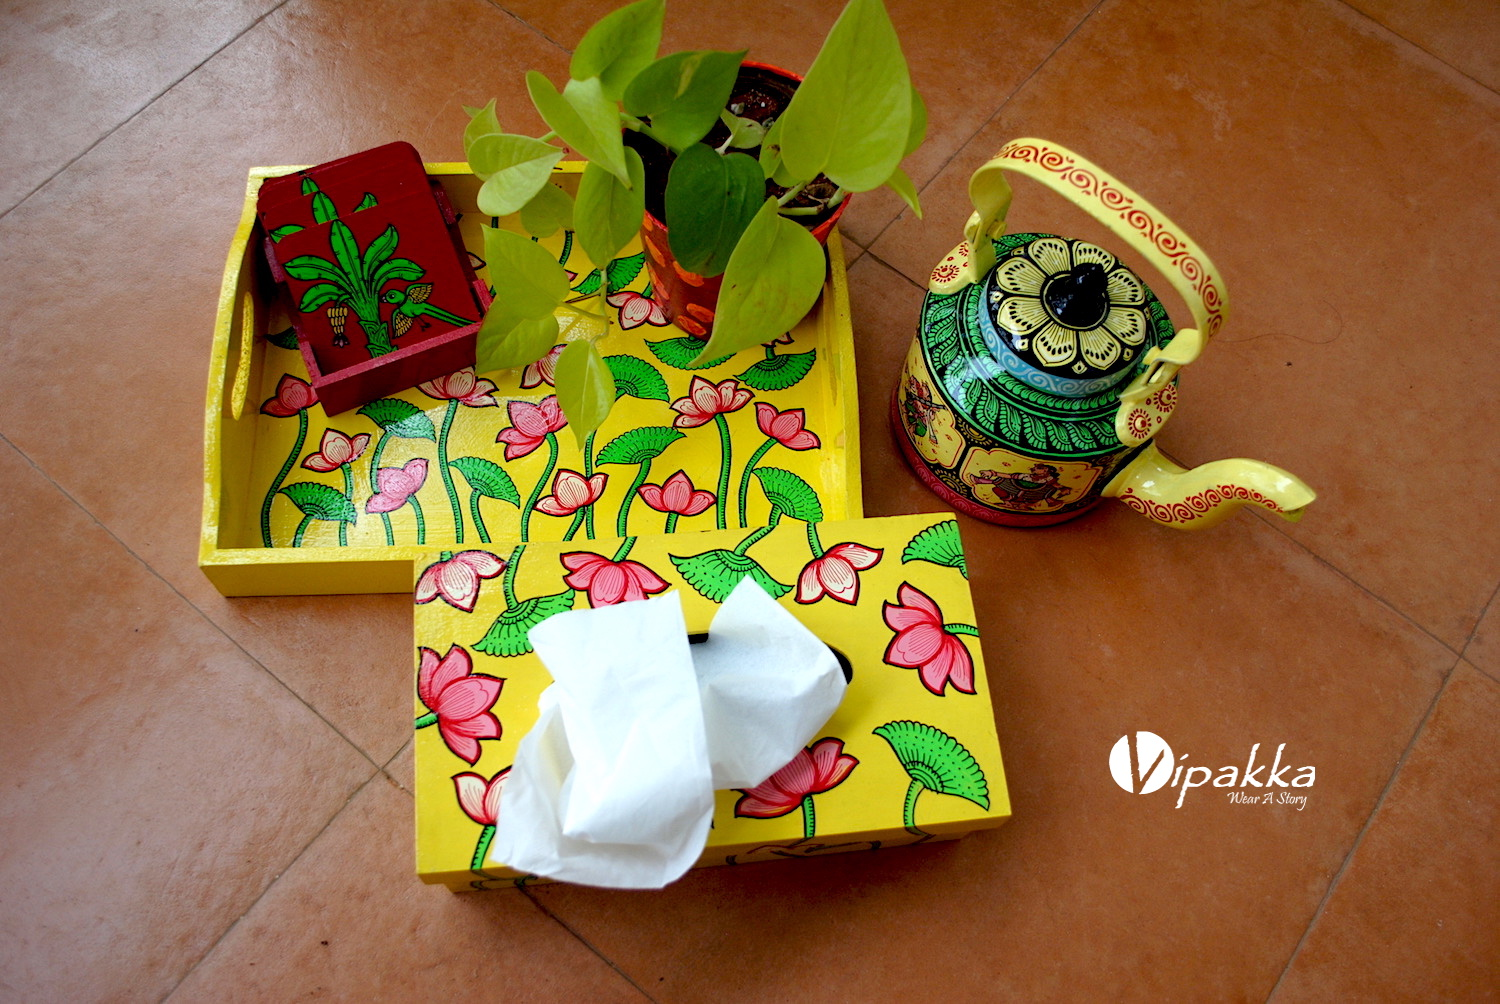 Vipakka-gifting-combo-2 Top 6 Gift Ideas To Make This Diwali Special